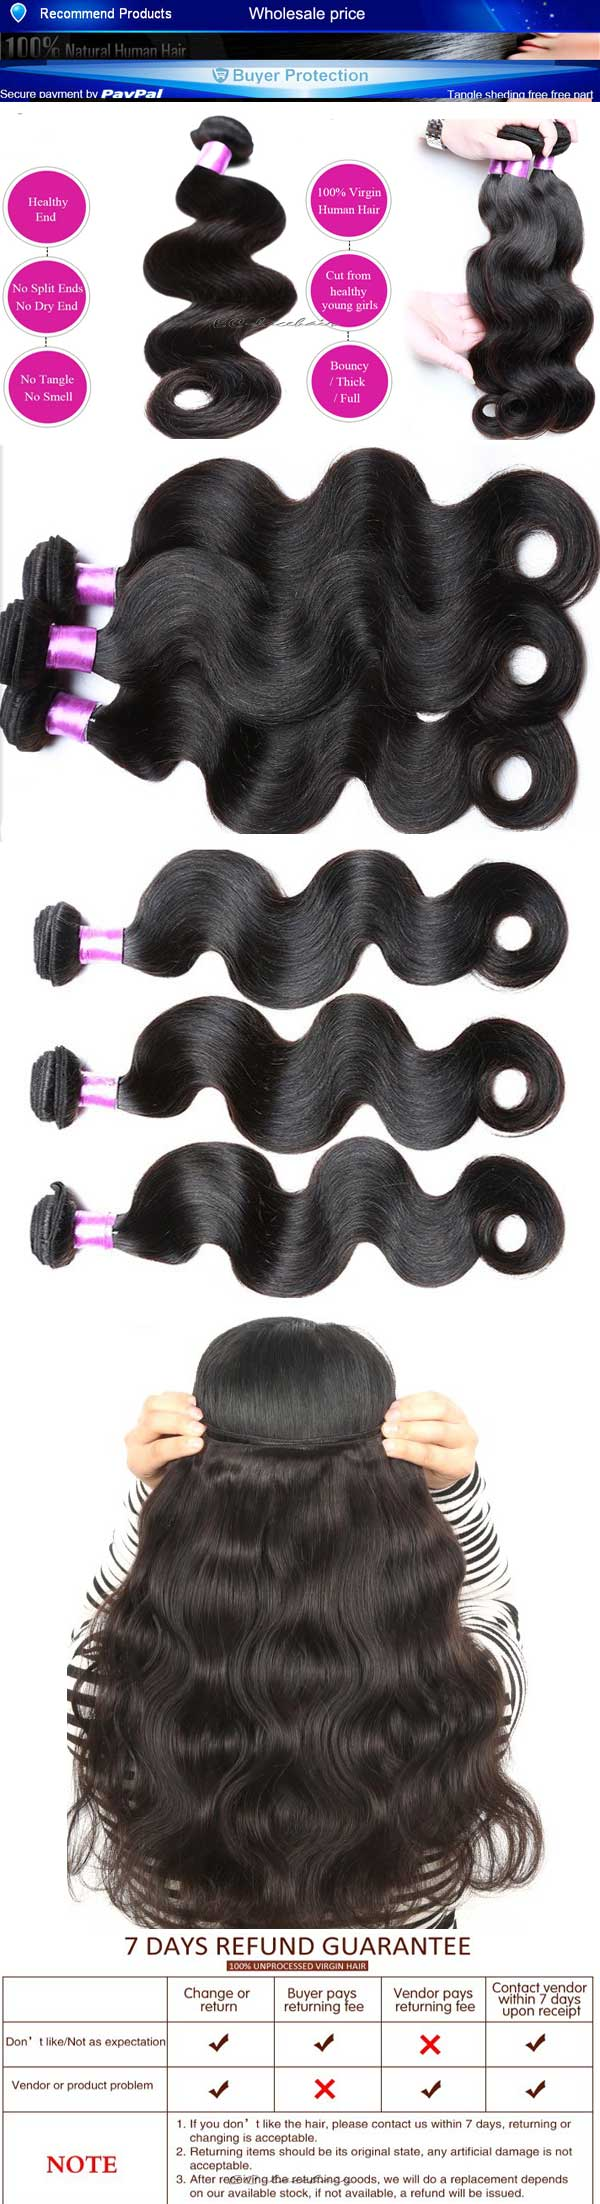 Best Quality Body Wave Indian Hair Weave Wefts Manufacturer